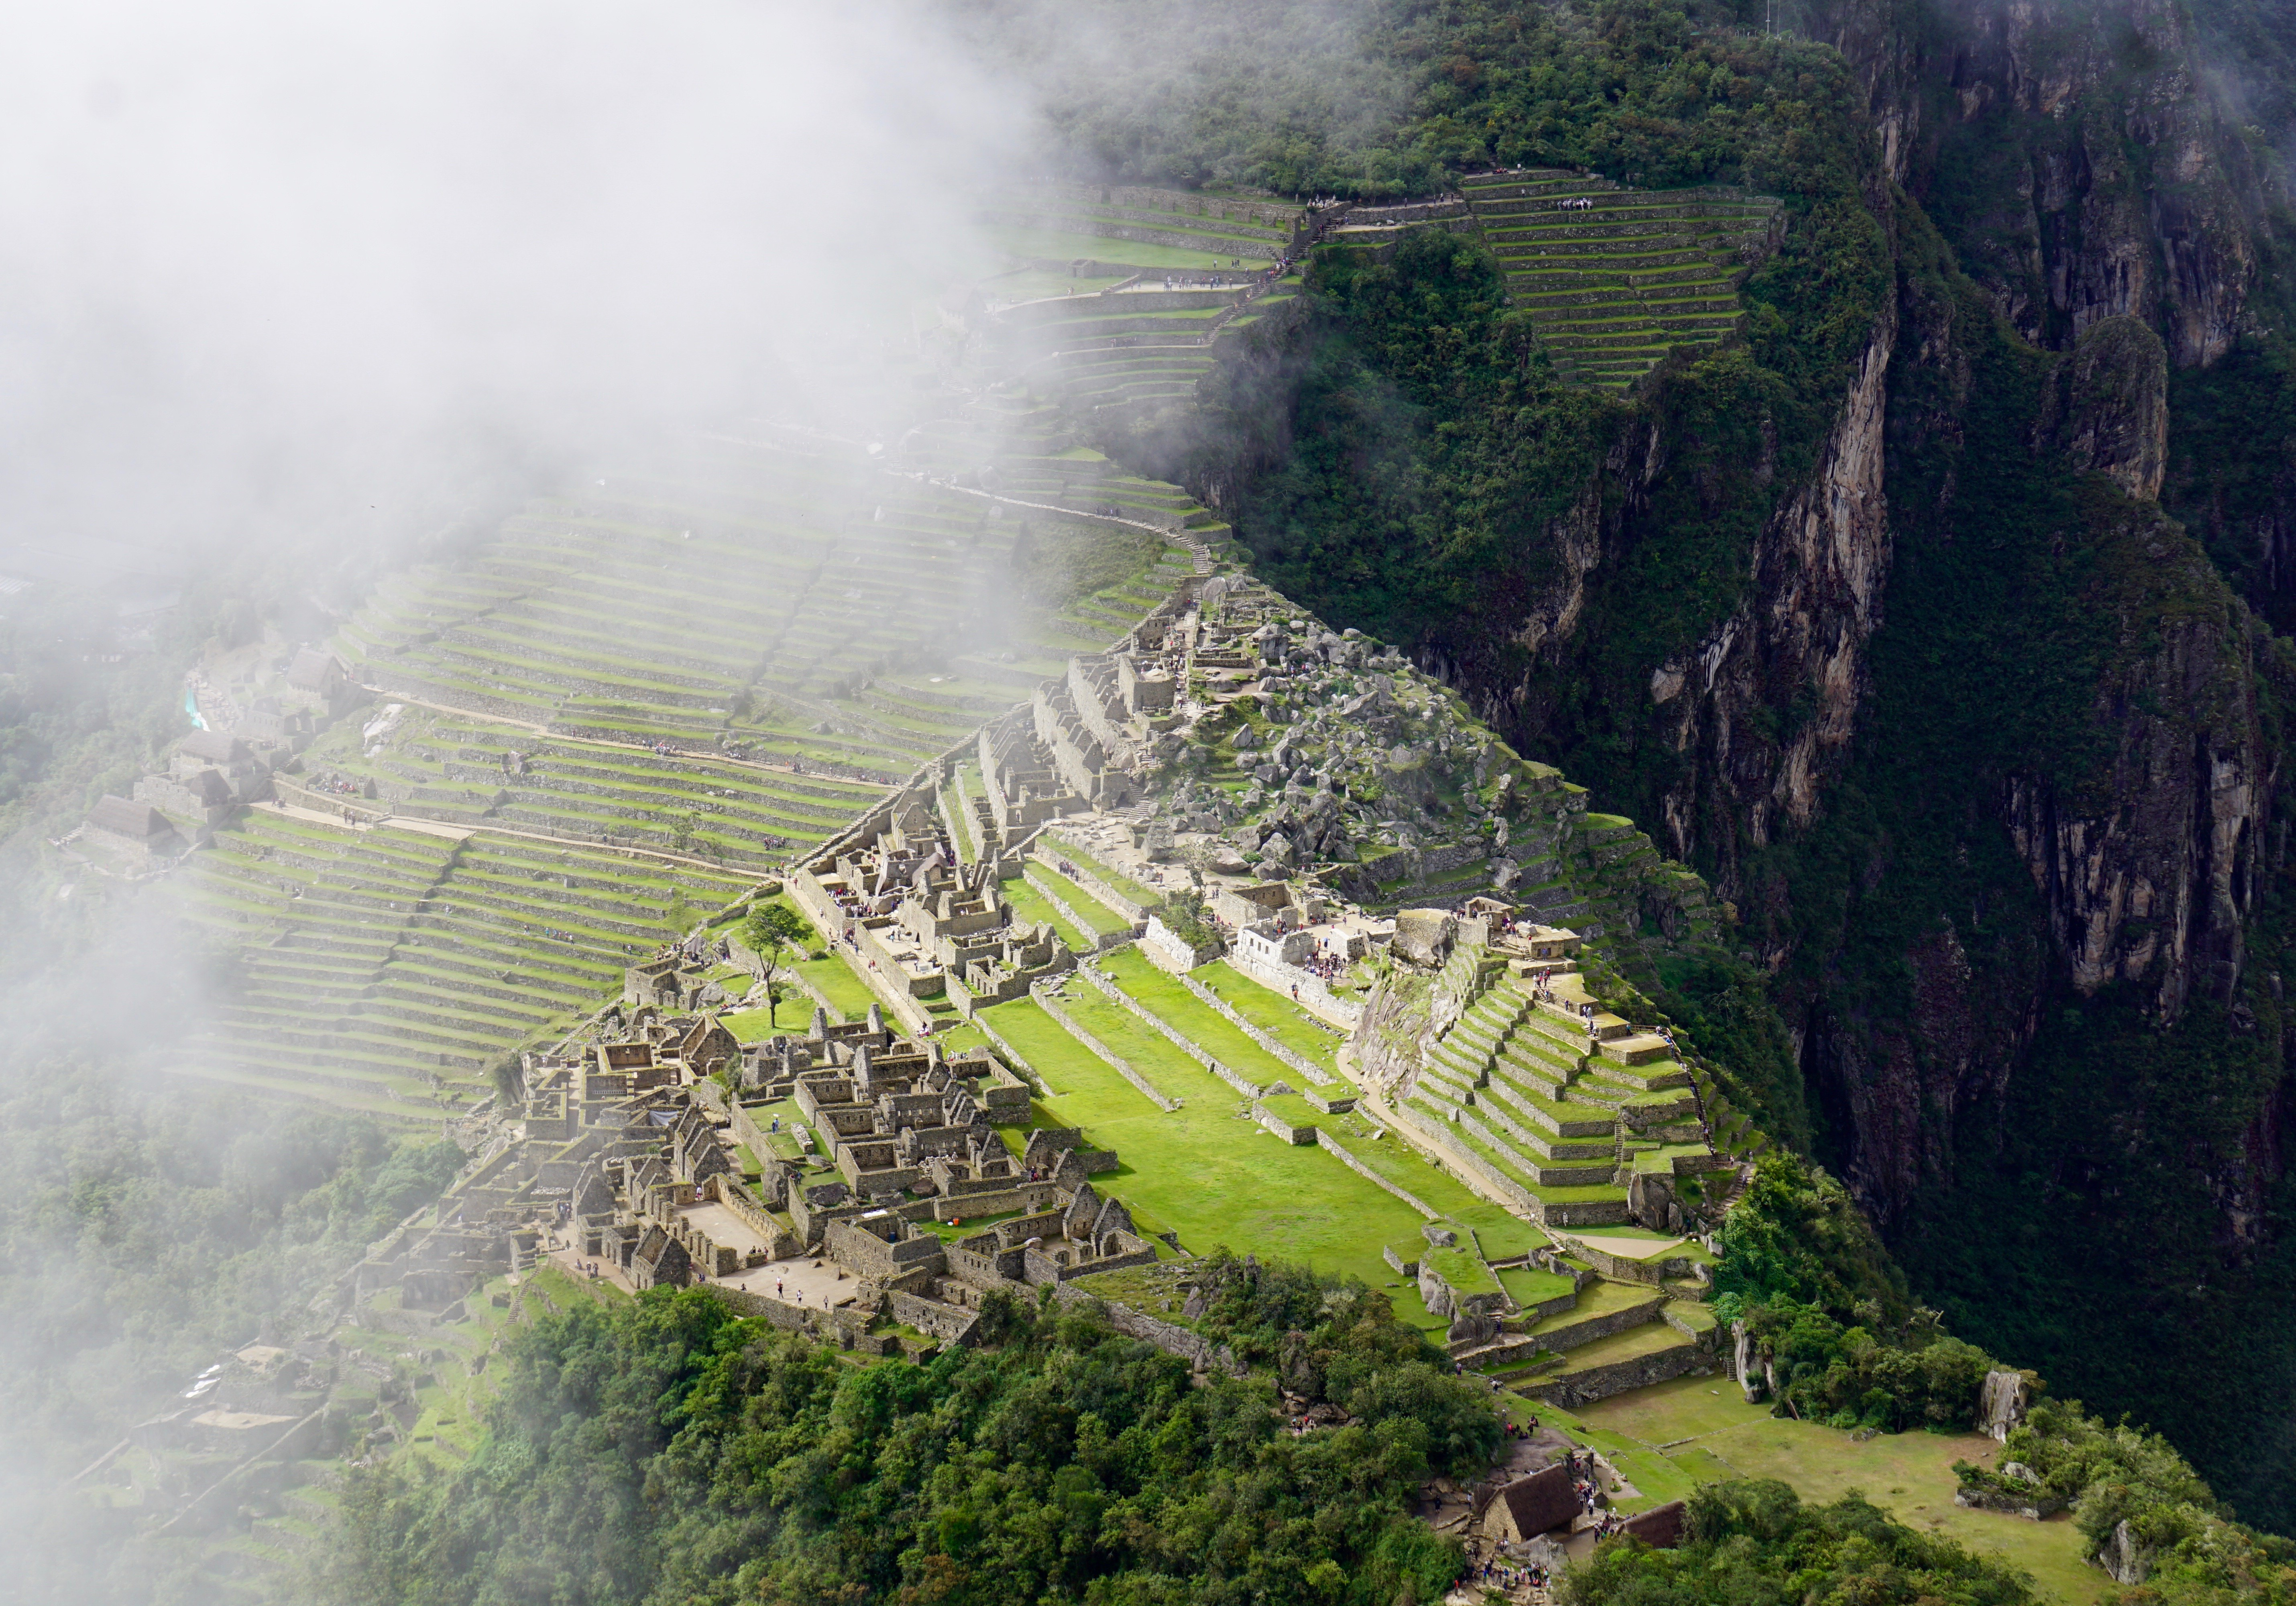 the view of Machu Picchu from above!